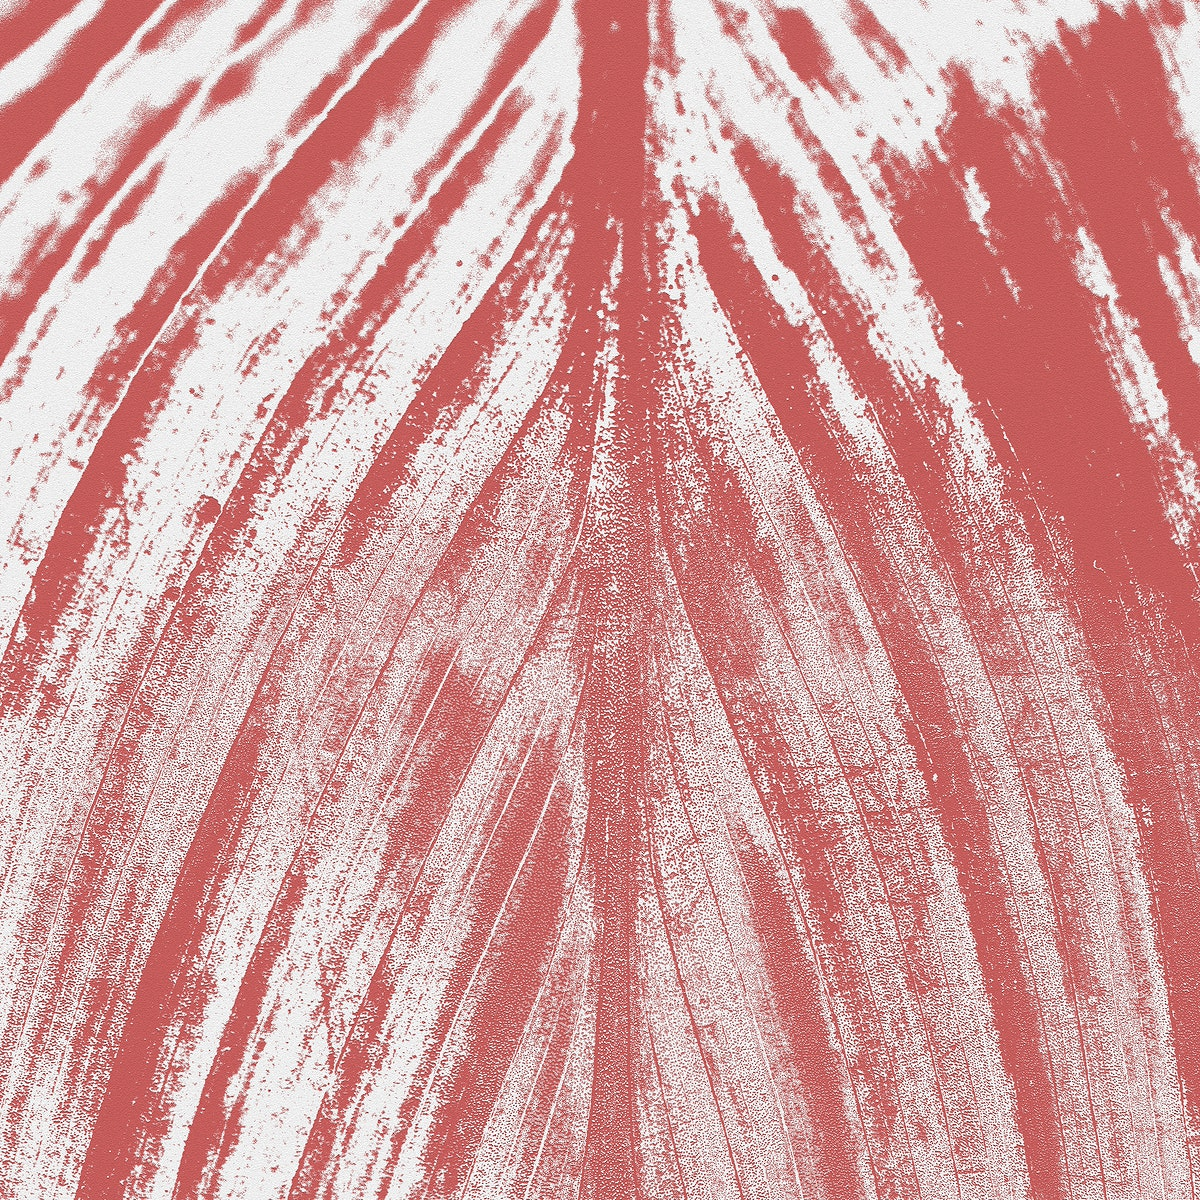 Detailed red leaf textured background